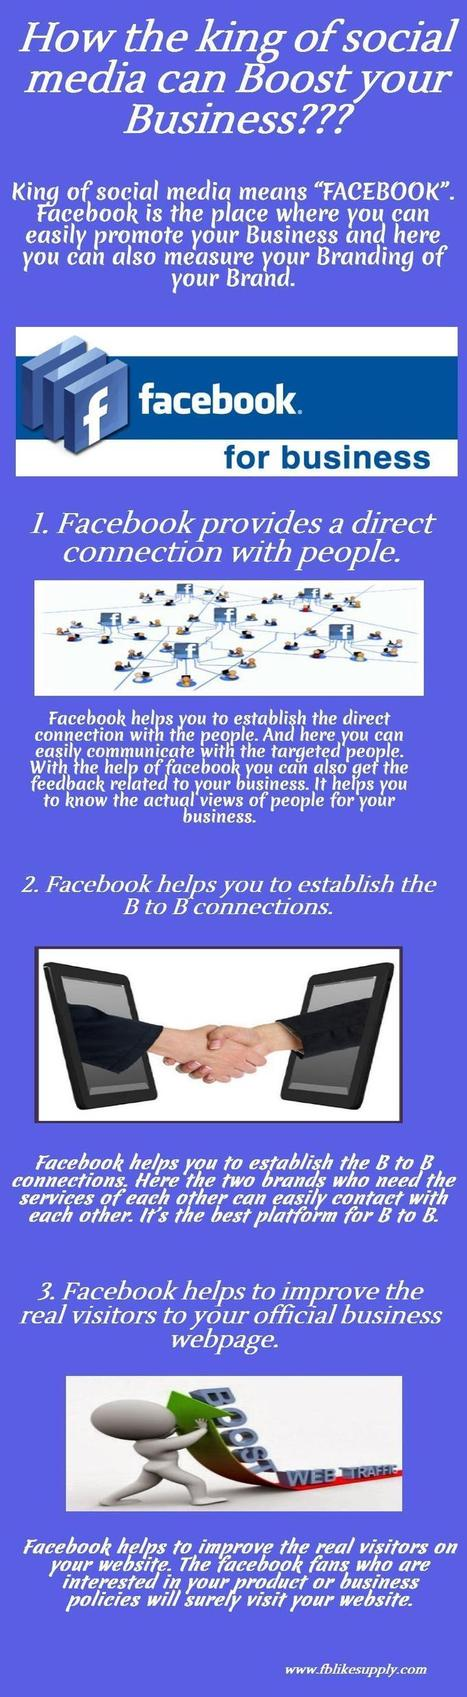 how the king of social media can boost your businesss   Digital Marketing   Scoop.it